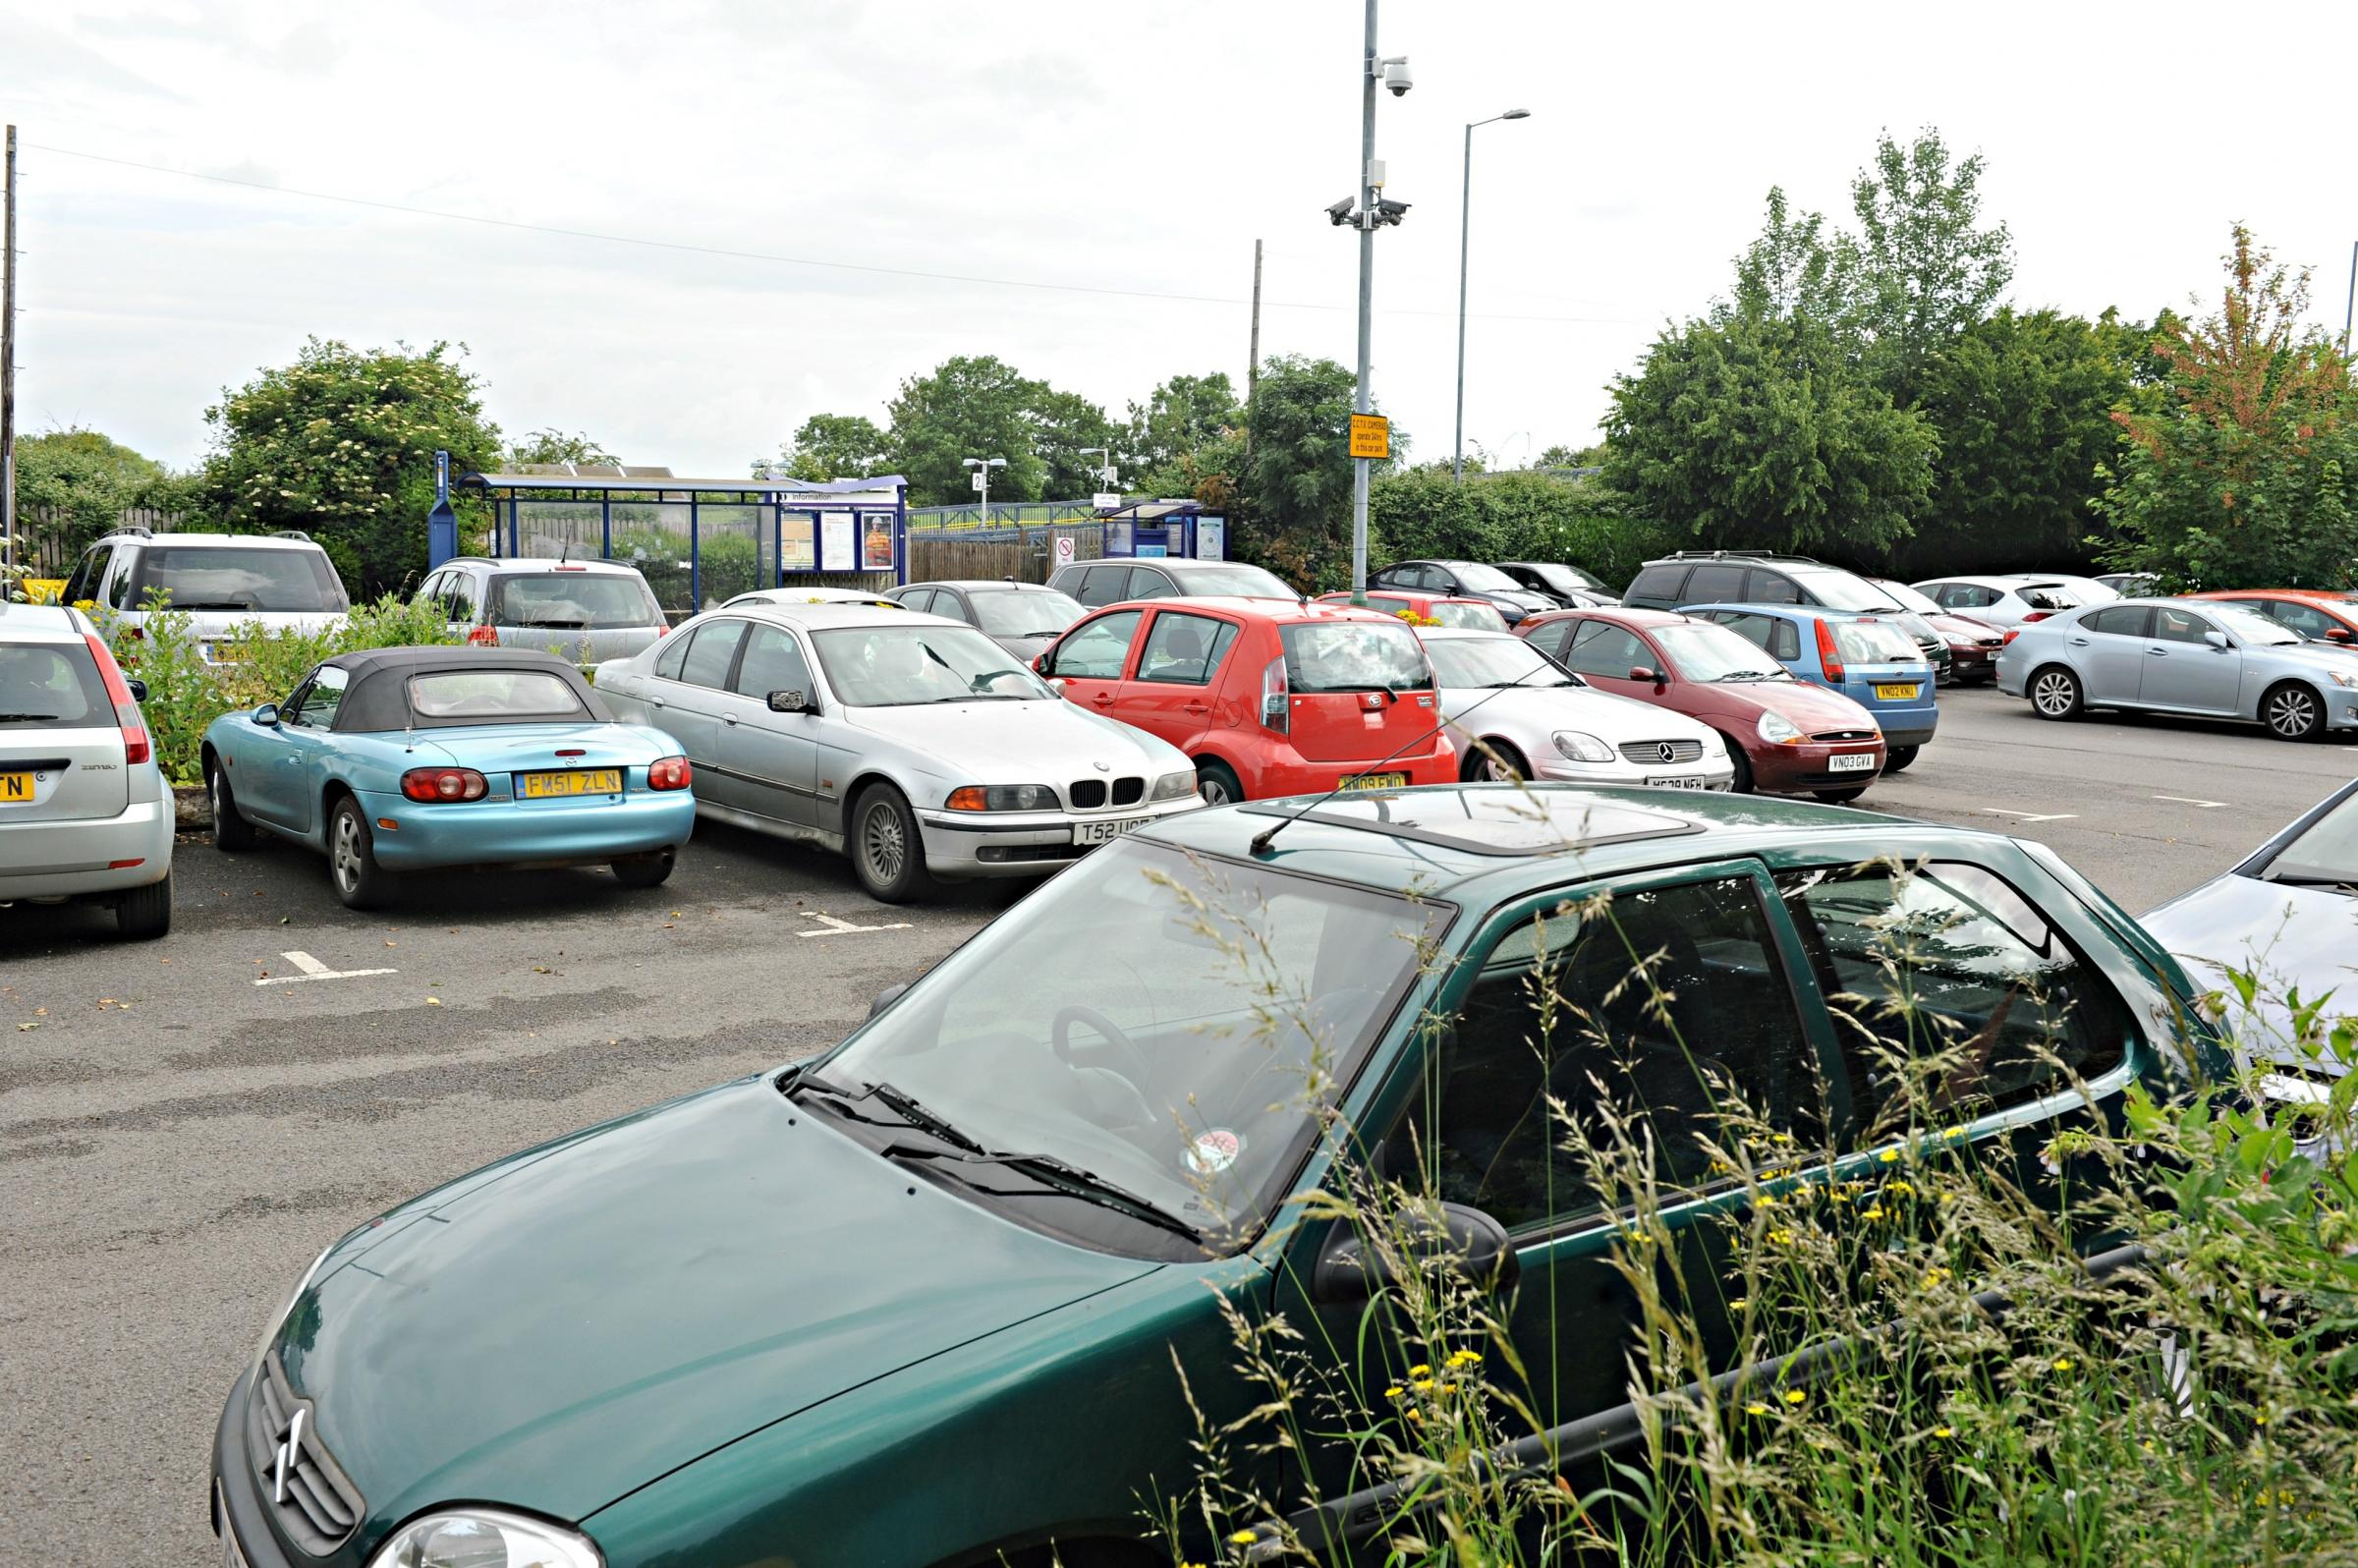 Car park stays open for summer